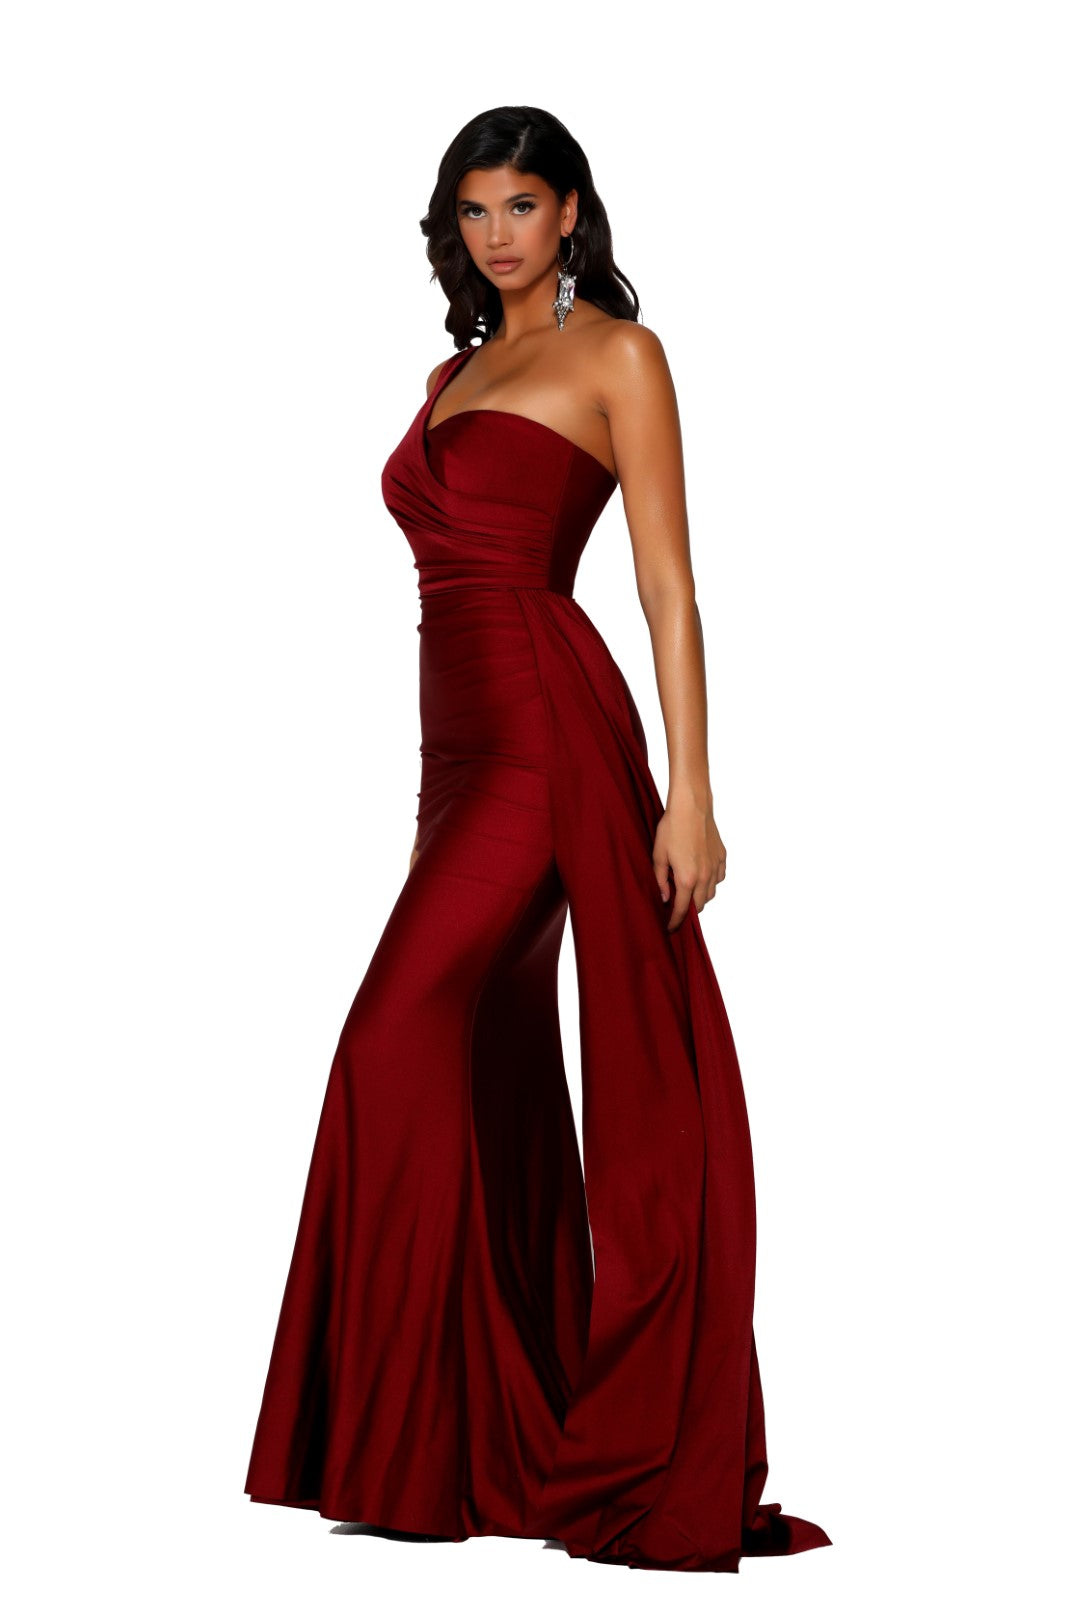 portia and Scarlett ps6321 red one shoulder